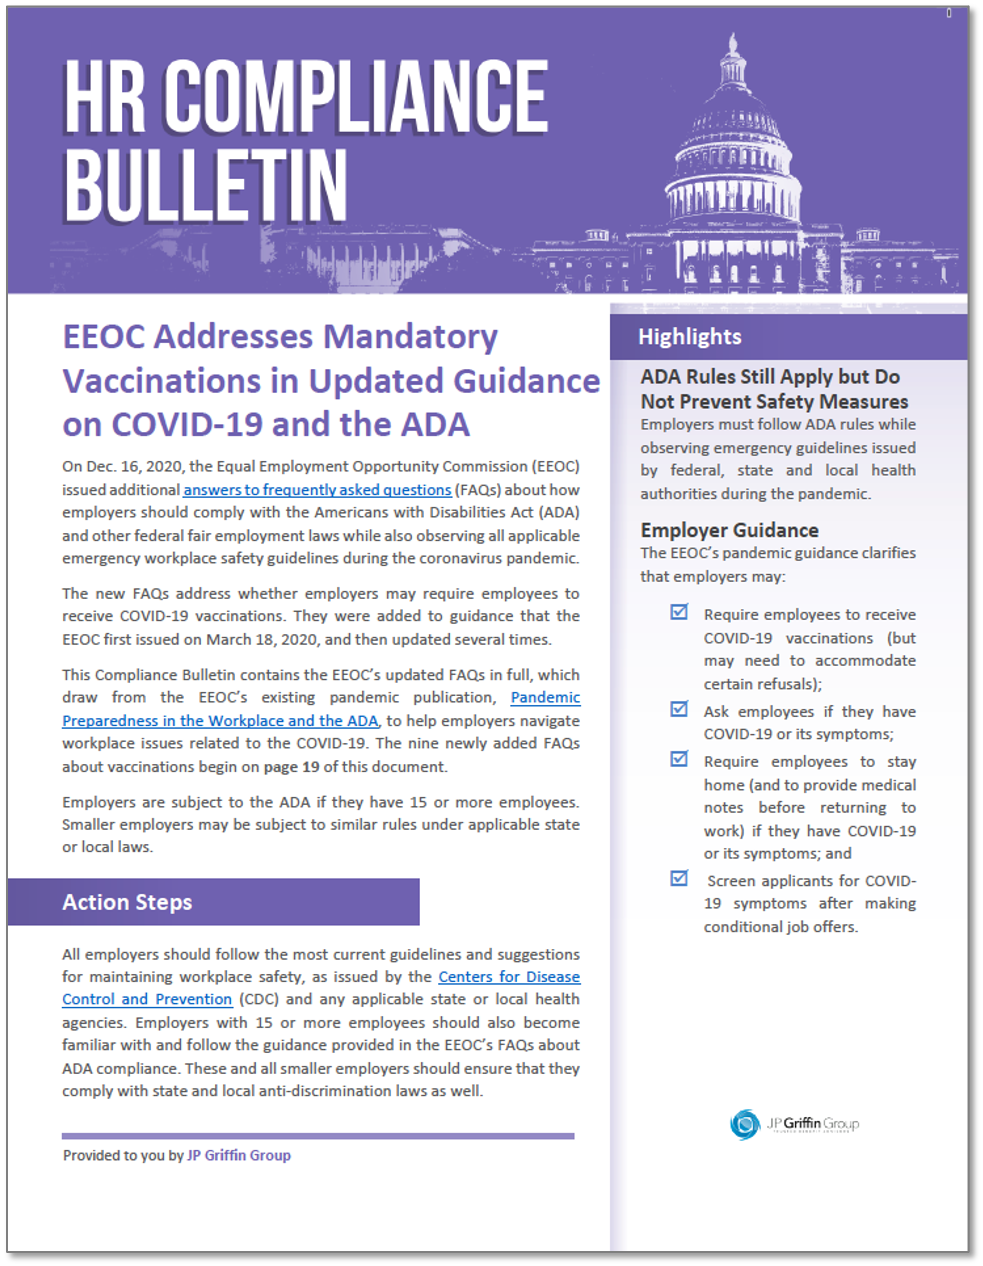 EEOC Addresses Mandatory Vaccinations in Updated Guidance on COVID-19 and the ADA